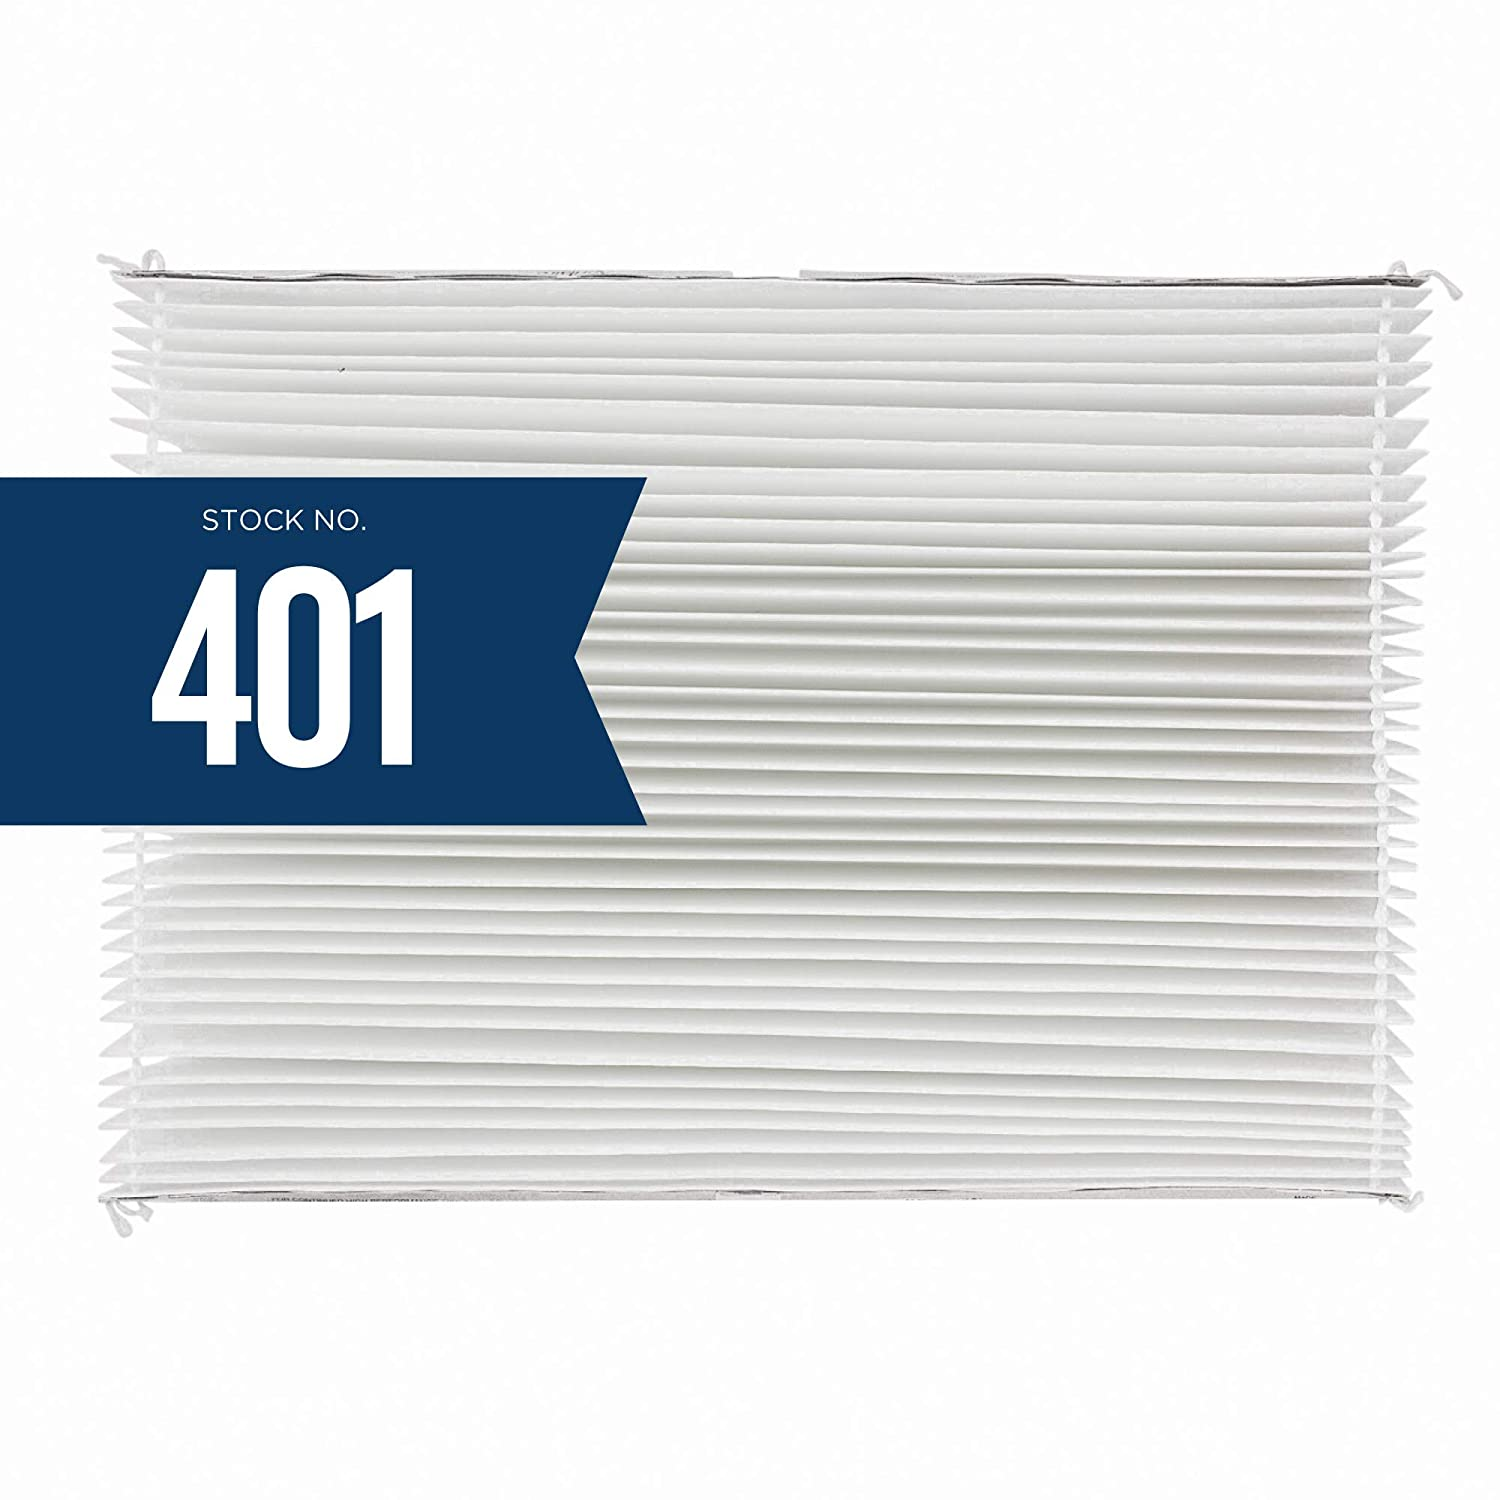 B000B60GYI Aprilaire 401 Replacement Filter for Aprilaire Whole House Air Purifier Model: 2400, Space Gard 2400, MERV 10 (Pack of 4) 71-Fh3pCvpL